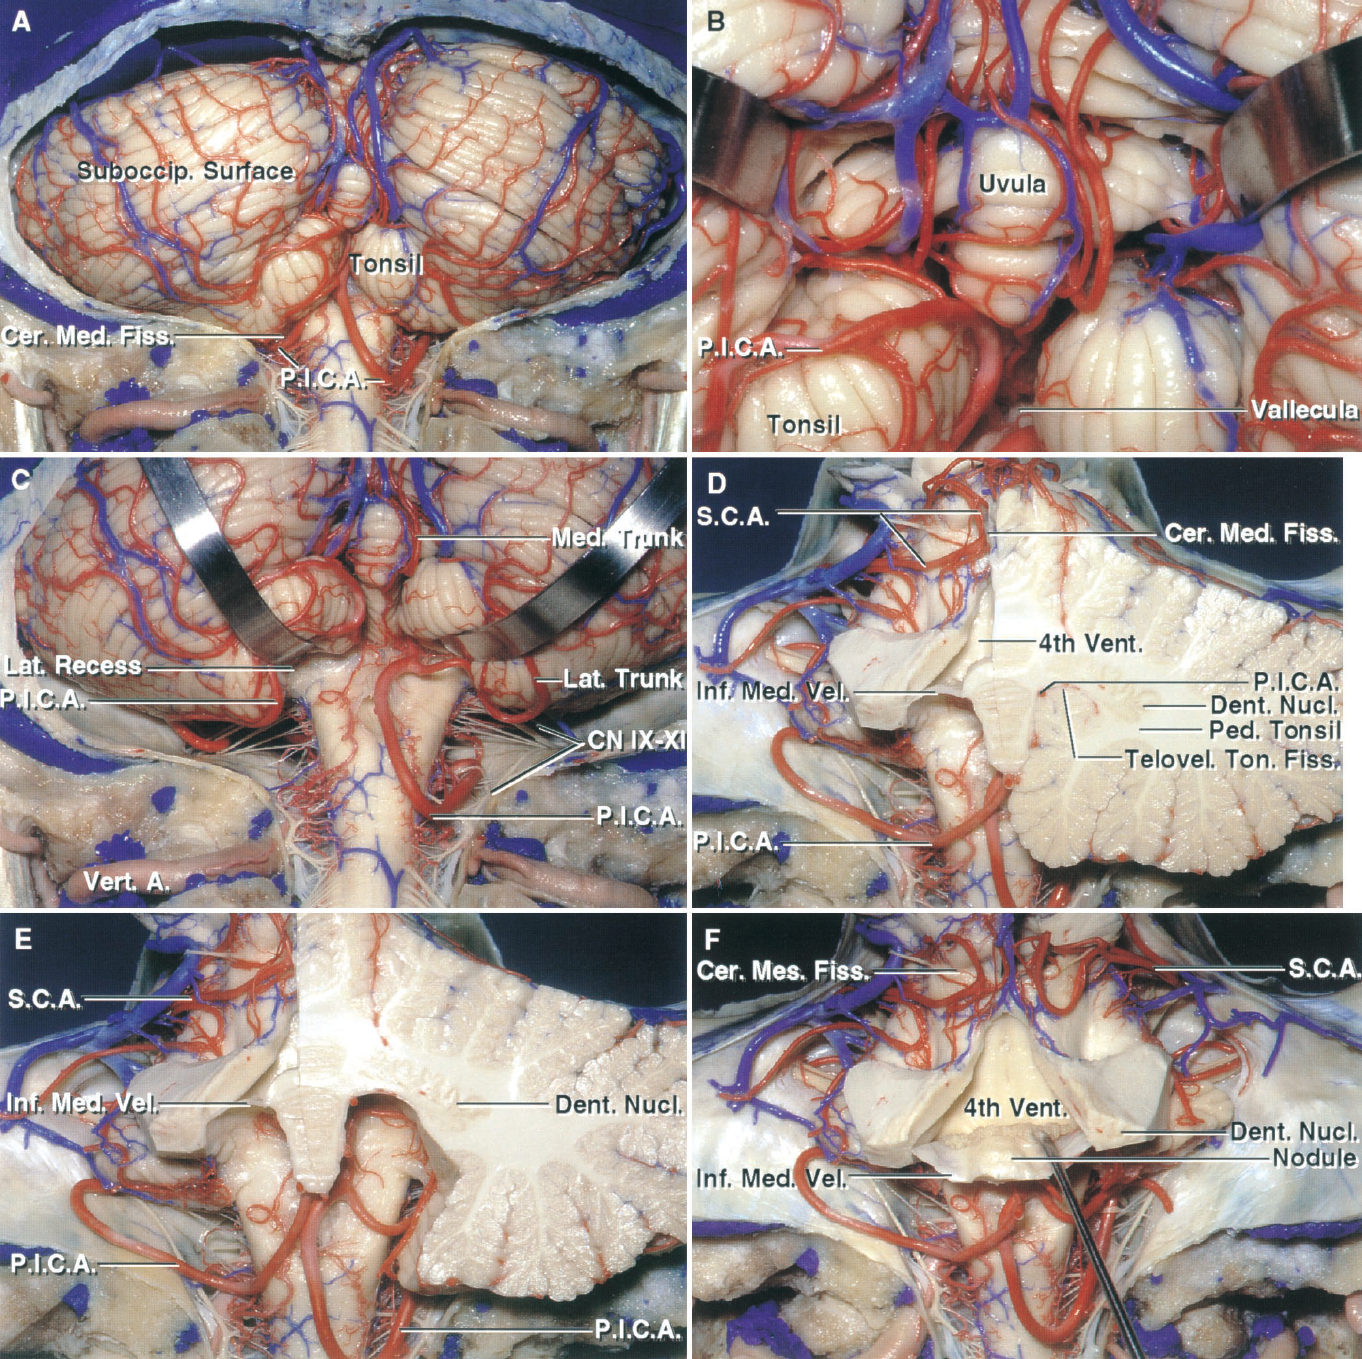 Figure 1.9. A–F. Posterior views. Stepwise dissection examining the relationships of the inferior medullary velum, dentate nucleus, tonsil, and the cerebellomedullary and cerebellomesencephalic fissures. A, the PICAs pass around the posterior medulla to reach the lower margin of the cerebellomedullary fissure. The left PICA courses around the lower pole of the tonsil. The right PICA descends well below the tonsil to the level of the foramen magnum before ascending along the medial tonsillar surface. B, the PICAs ascend between the tonsils and medulla to reach the interval between the tonsil and uvula and to supply the suboccipital surface. C, the posterior medullary segment of the right PICA divides into a medial trunk supplying the vermis and paravermian area and a lateral trunk supplying the hemisphere. D, the cerebellum has been sectioned in an oblique coronal plane to show the relationship of the rostral pole of the tonsil to the inferior medullary velum and dentate nucleus. The dentate nucleus is located above the posterolateral part of the ventricular roof, near the fastigium, where it wraps around, and is separated from, the rostral pole of the tonsil by the inferior medullary velum. The left tonsil has been removed while preserving the left half of the inferior medullary velum. The SCAs course in the cerebellomesencephalic fissure. The PICA passes between the walls of the cerebellomedullary fissure formed above by the inferior medullary velum and below by the upper pole of the tonsil. E, both tonsils have been removed. The PICAs ascend through the cleft between the inferior medullary velum and rostral pole of the tonsil. F, the superior part of the ventricular roof has been removed and the nodule and the inferior medullary velum has been folded downward to expose the floor. A., artery; Cer. Med., cerebellomedullary; Cer.Mes., cerebellomesencephalic; CN, cranial nerve; Dent., dentate; Fiss., fissure; Inf., inferior; Lat., lateral; Med., medial, medullary; Nuc